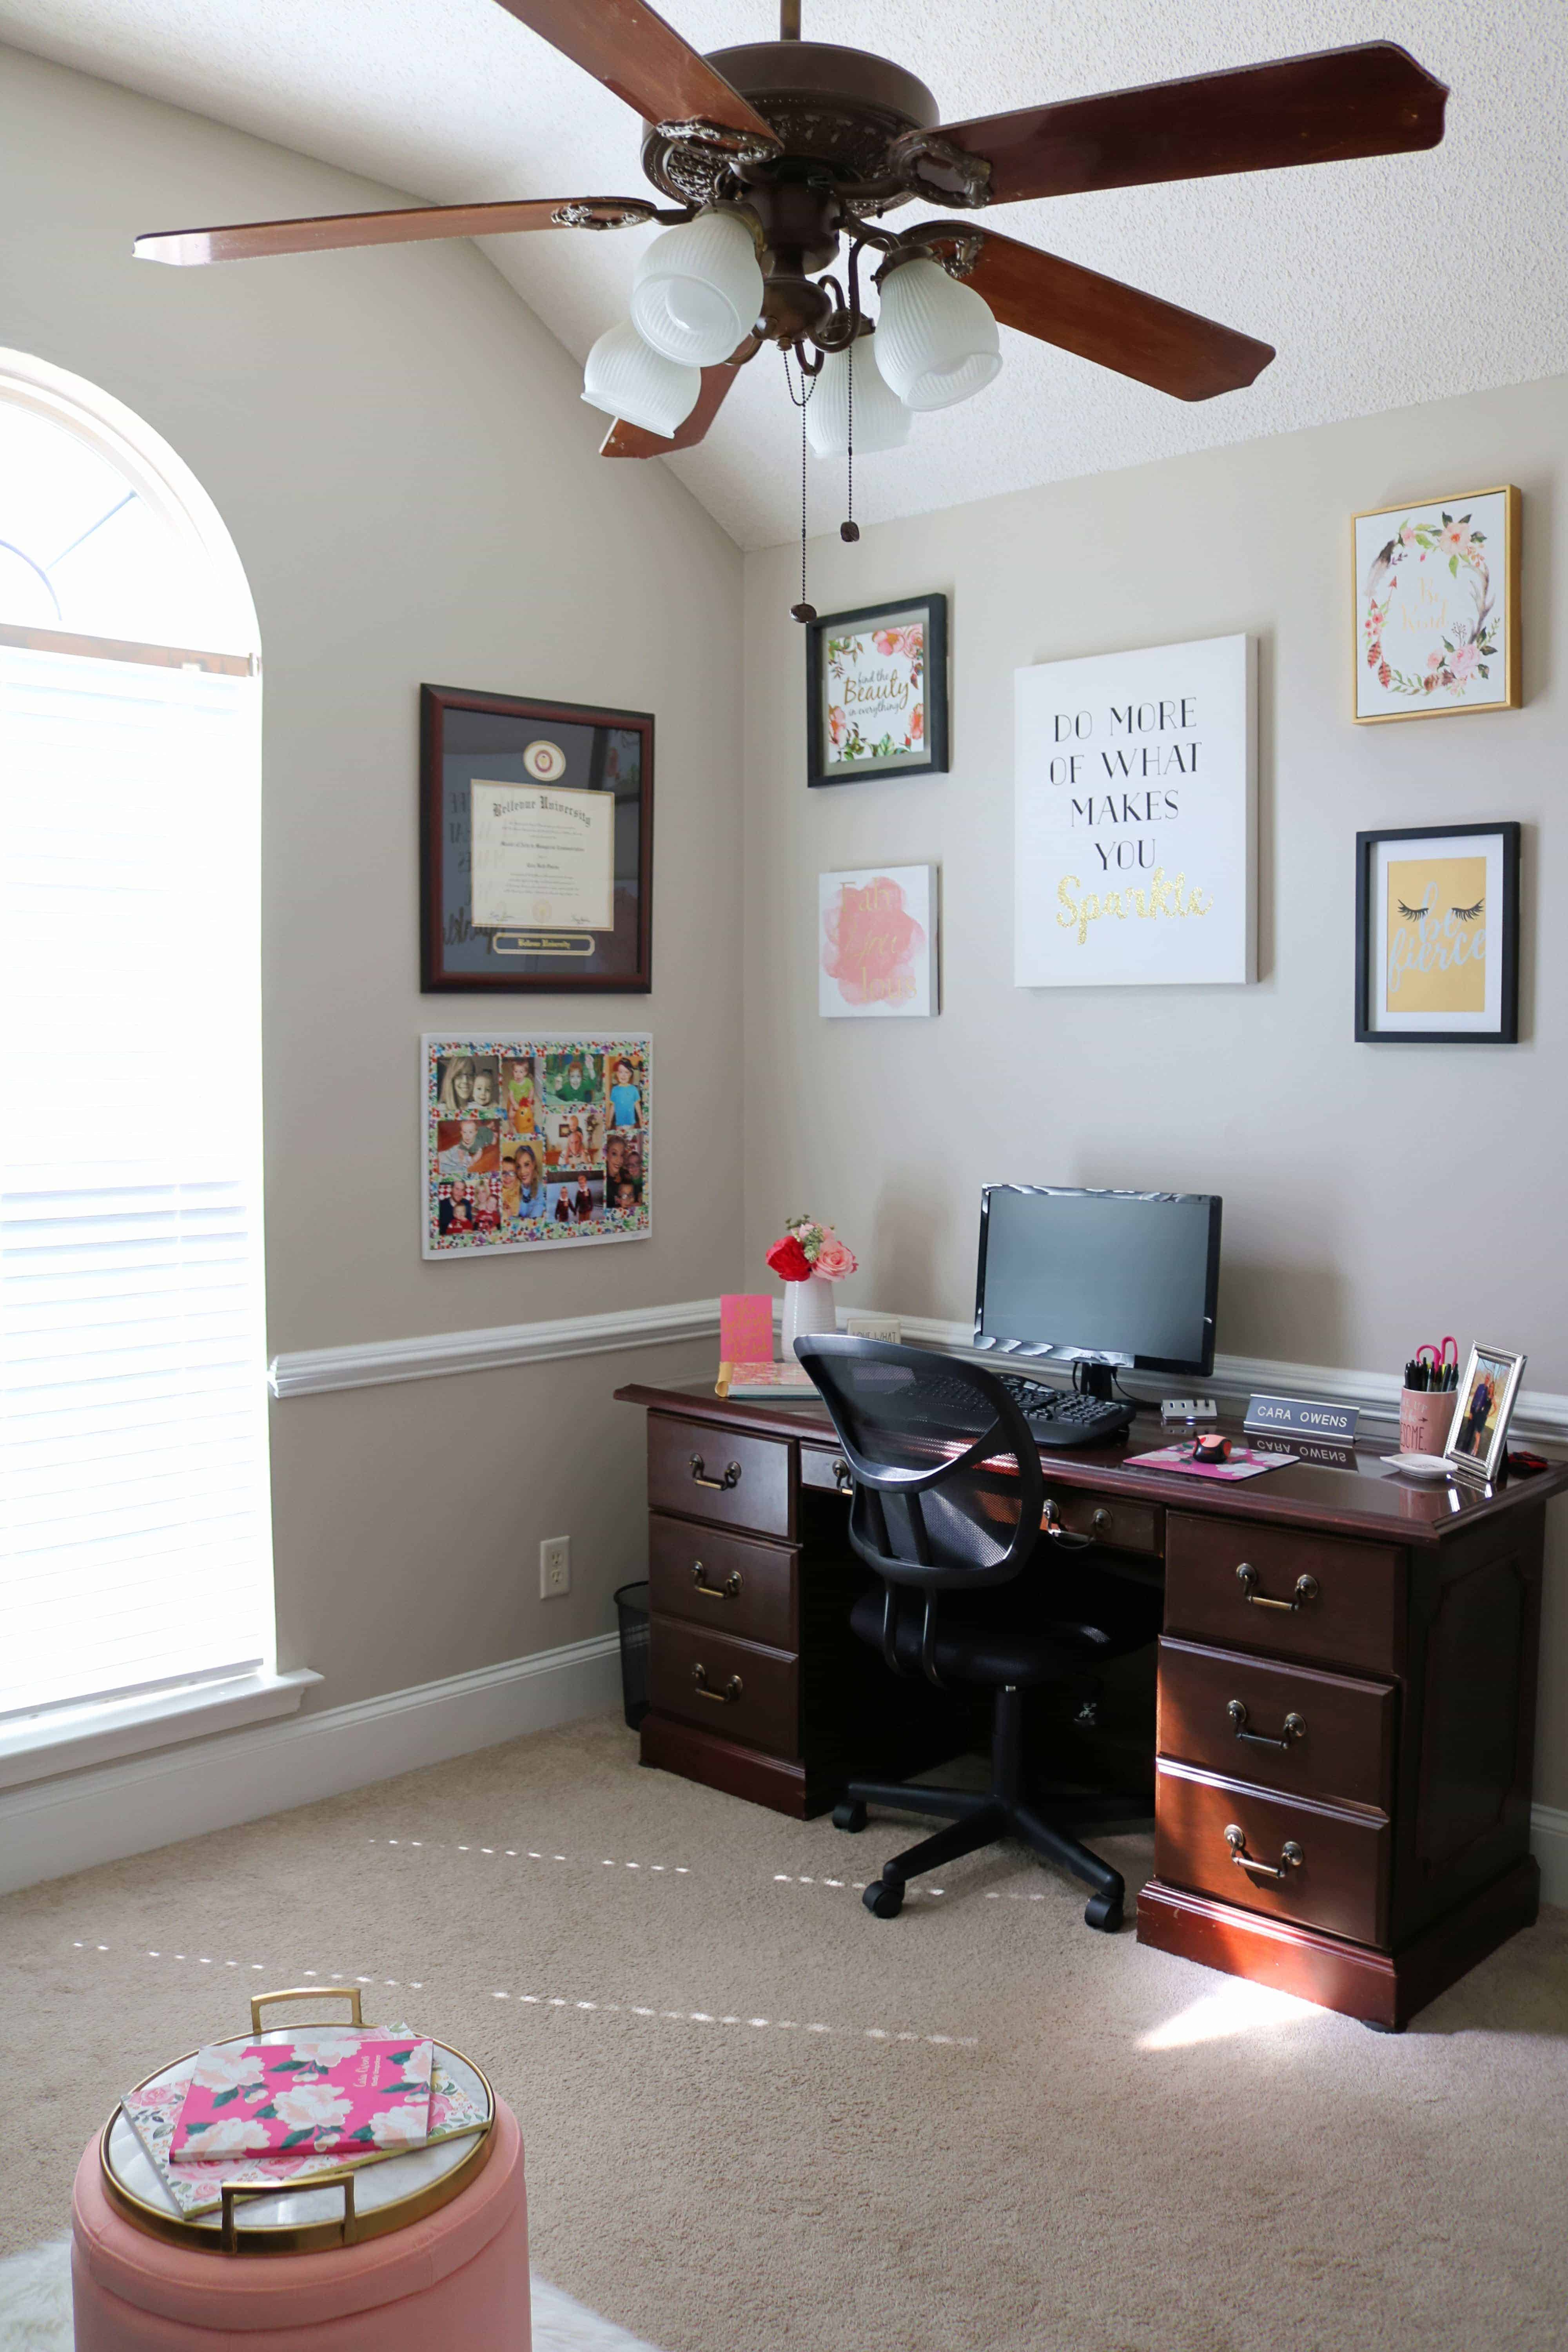 Tips for Decorating a Home Office + My Home Office Reveal - Kindly ...